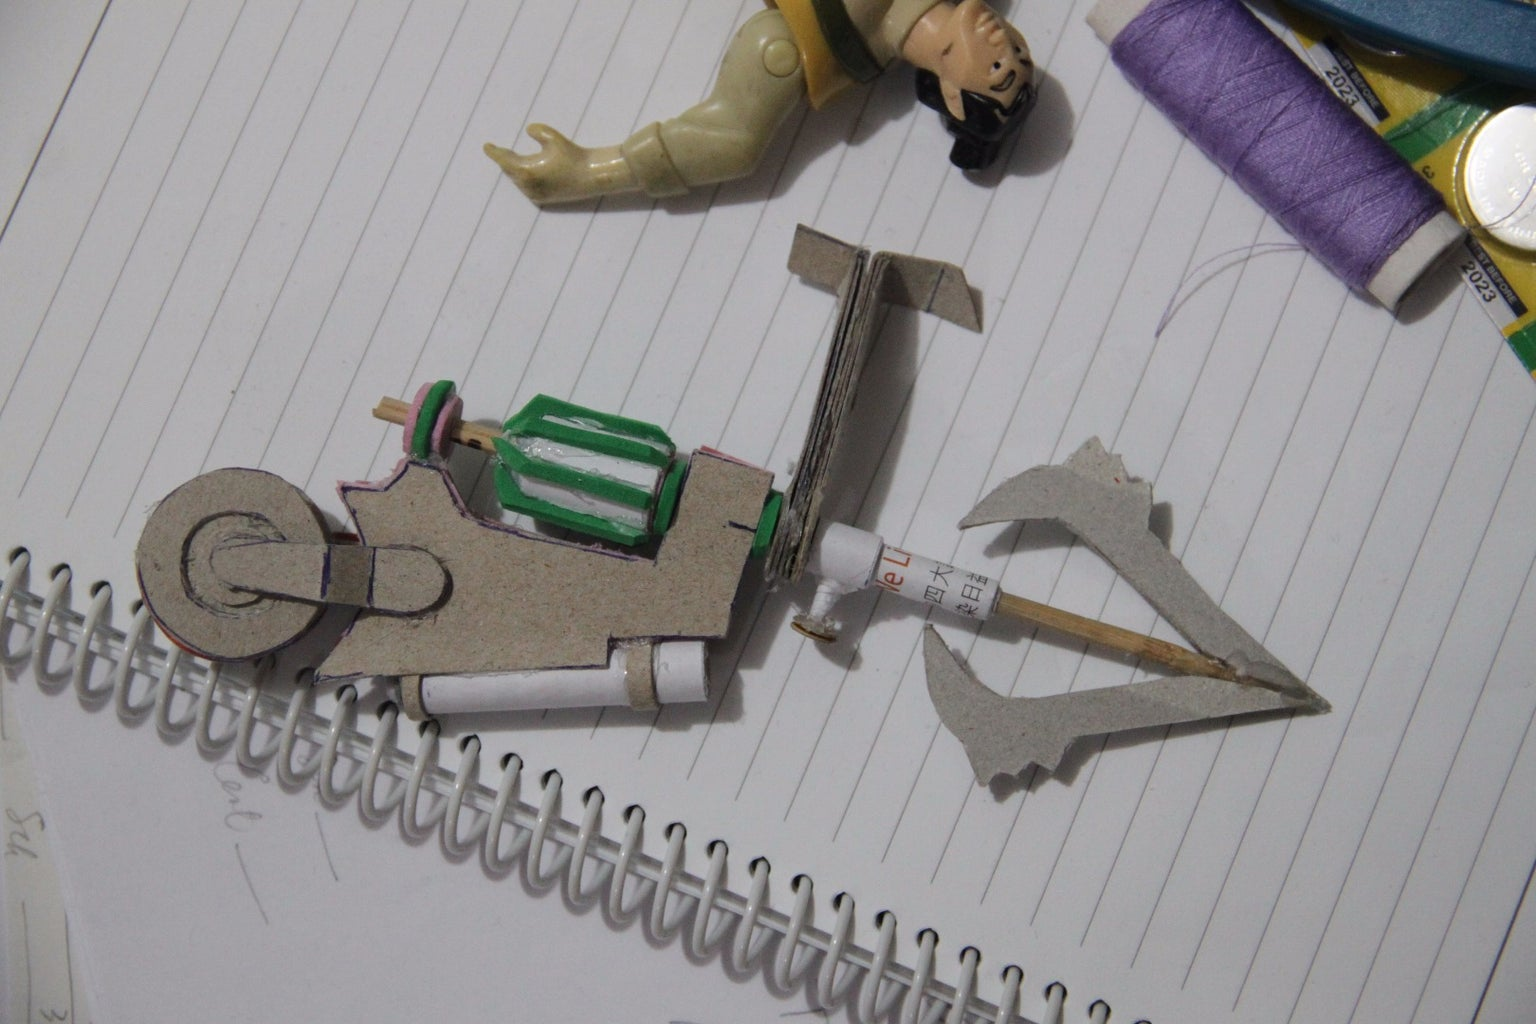 Build the Grappling Hook